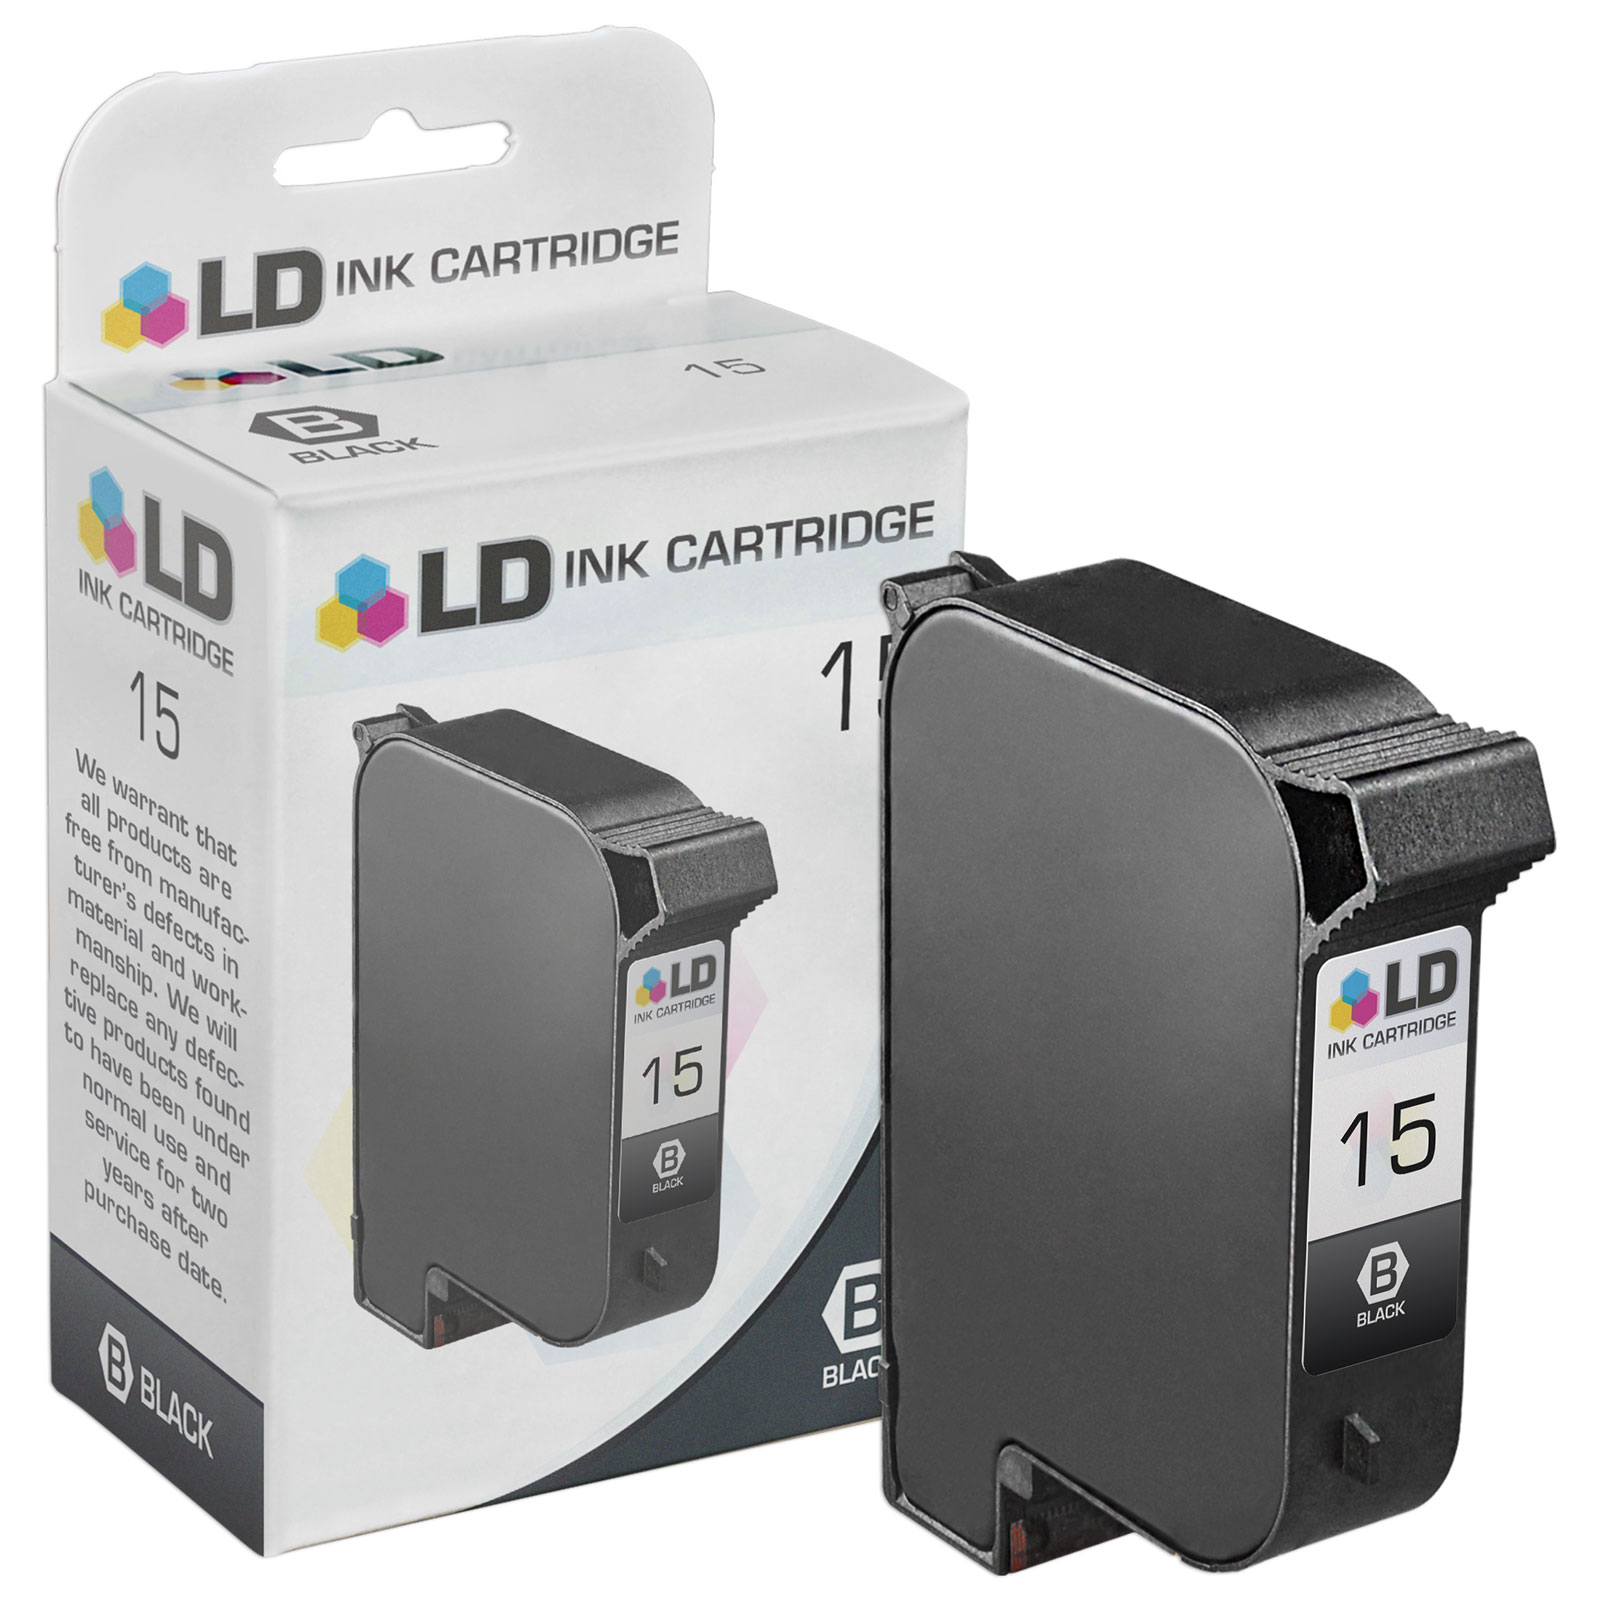 LD Remanufactured Replacement Ink Cartridge for Hewlett Packard C6615DN (HP 15) Black